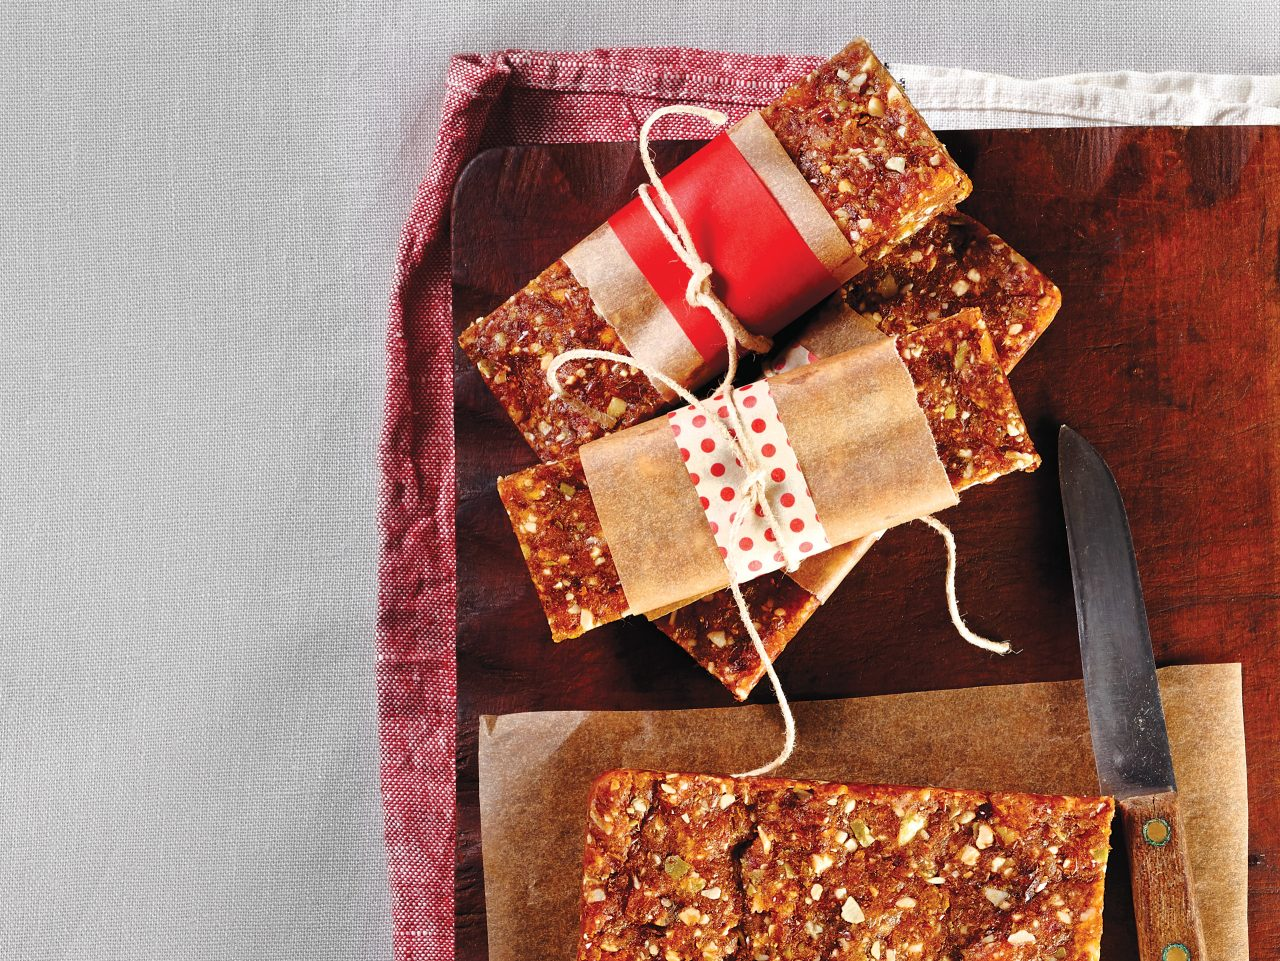 fruit and nut bars tied up with string